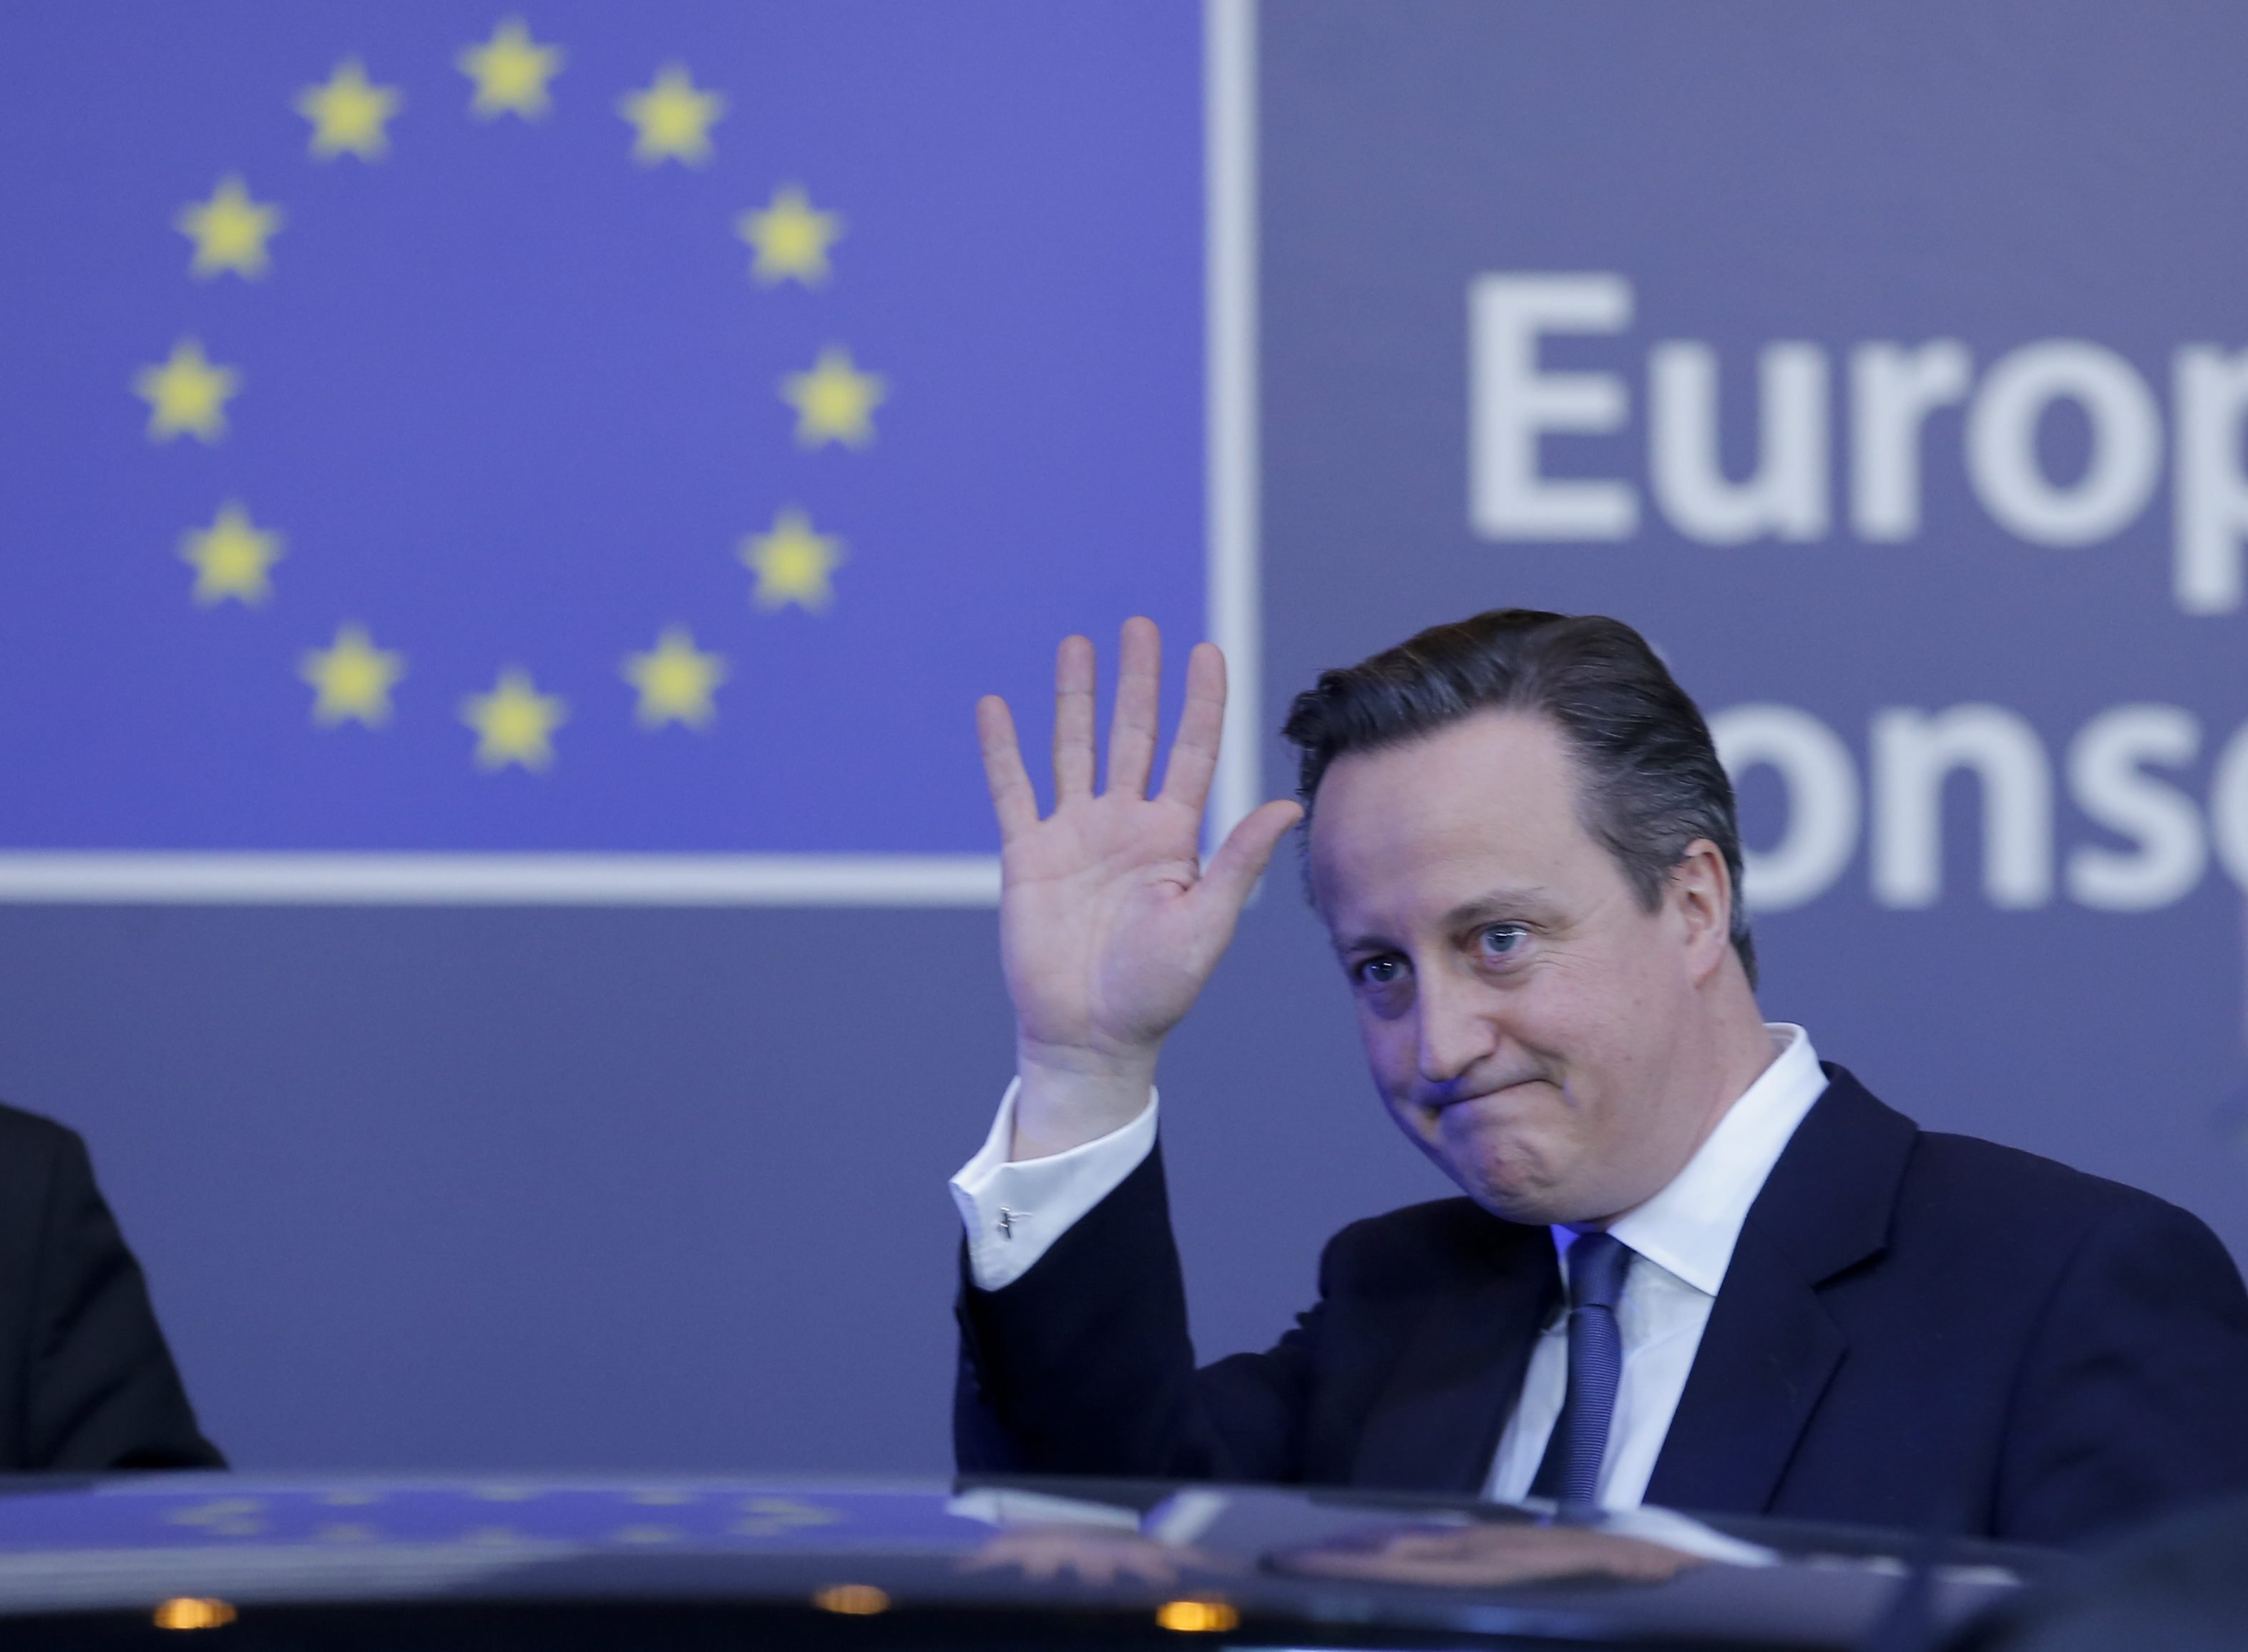 British Prime Minister David Cameron leaves at the end of a two day EU summit at EU headquarters in Brussels, Feb. 19, 2016.